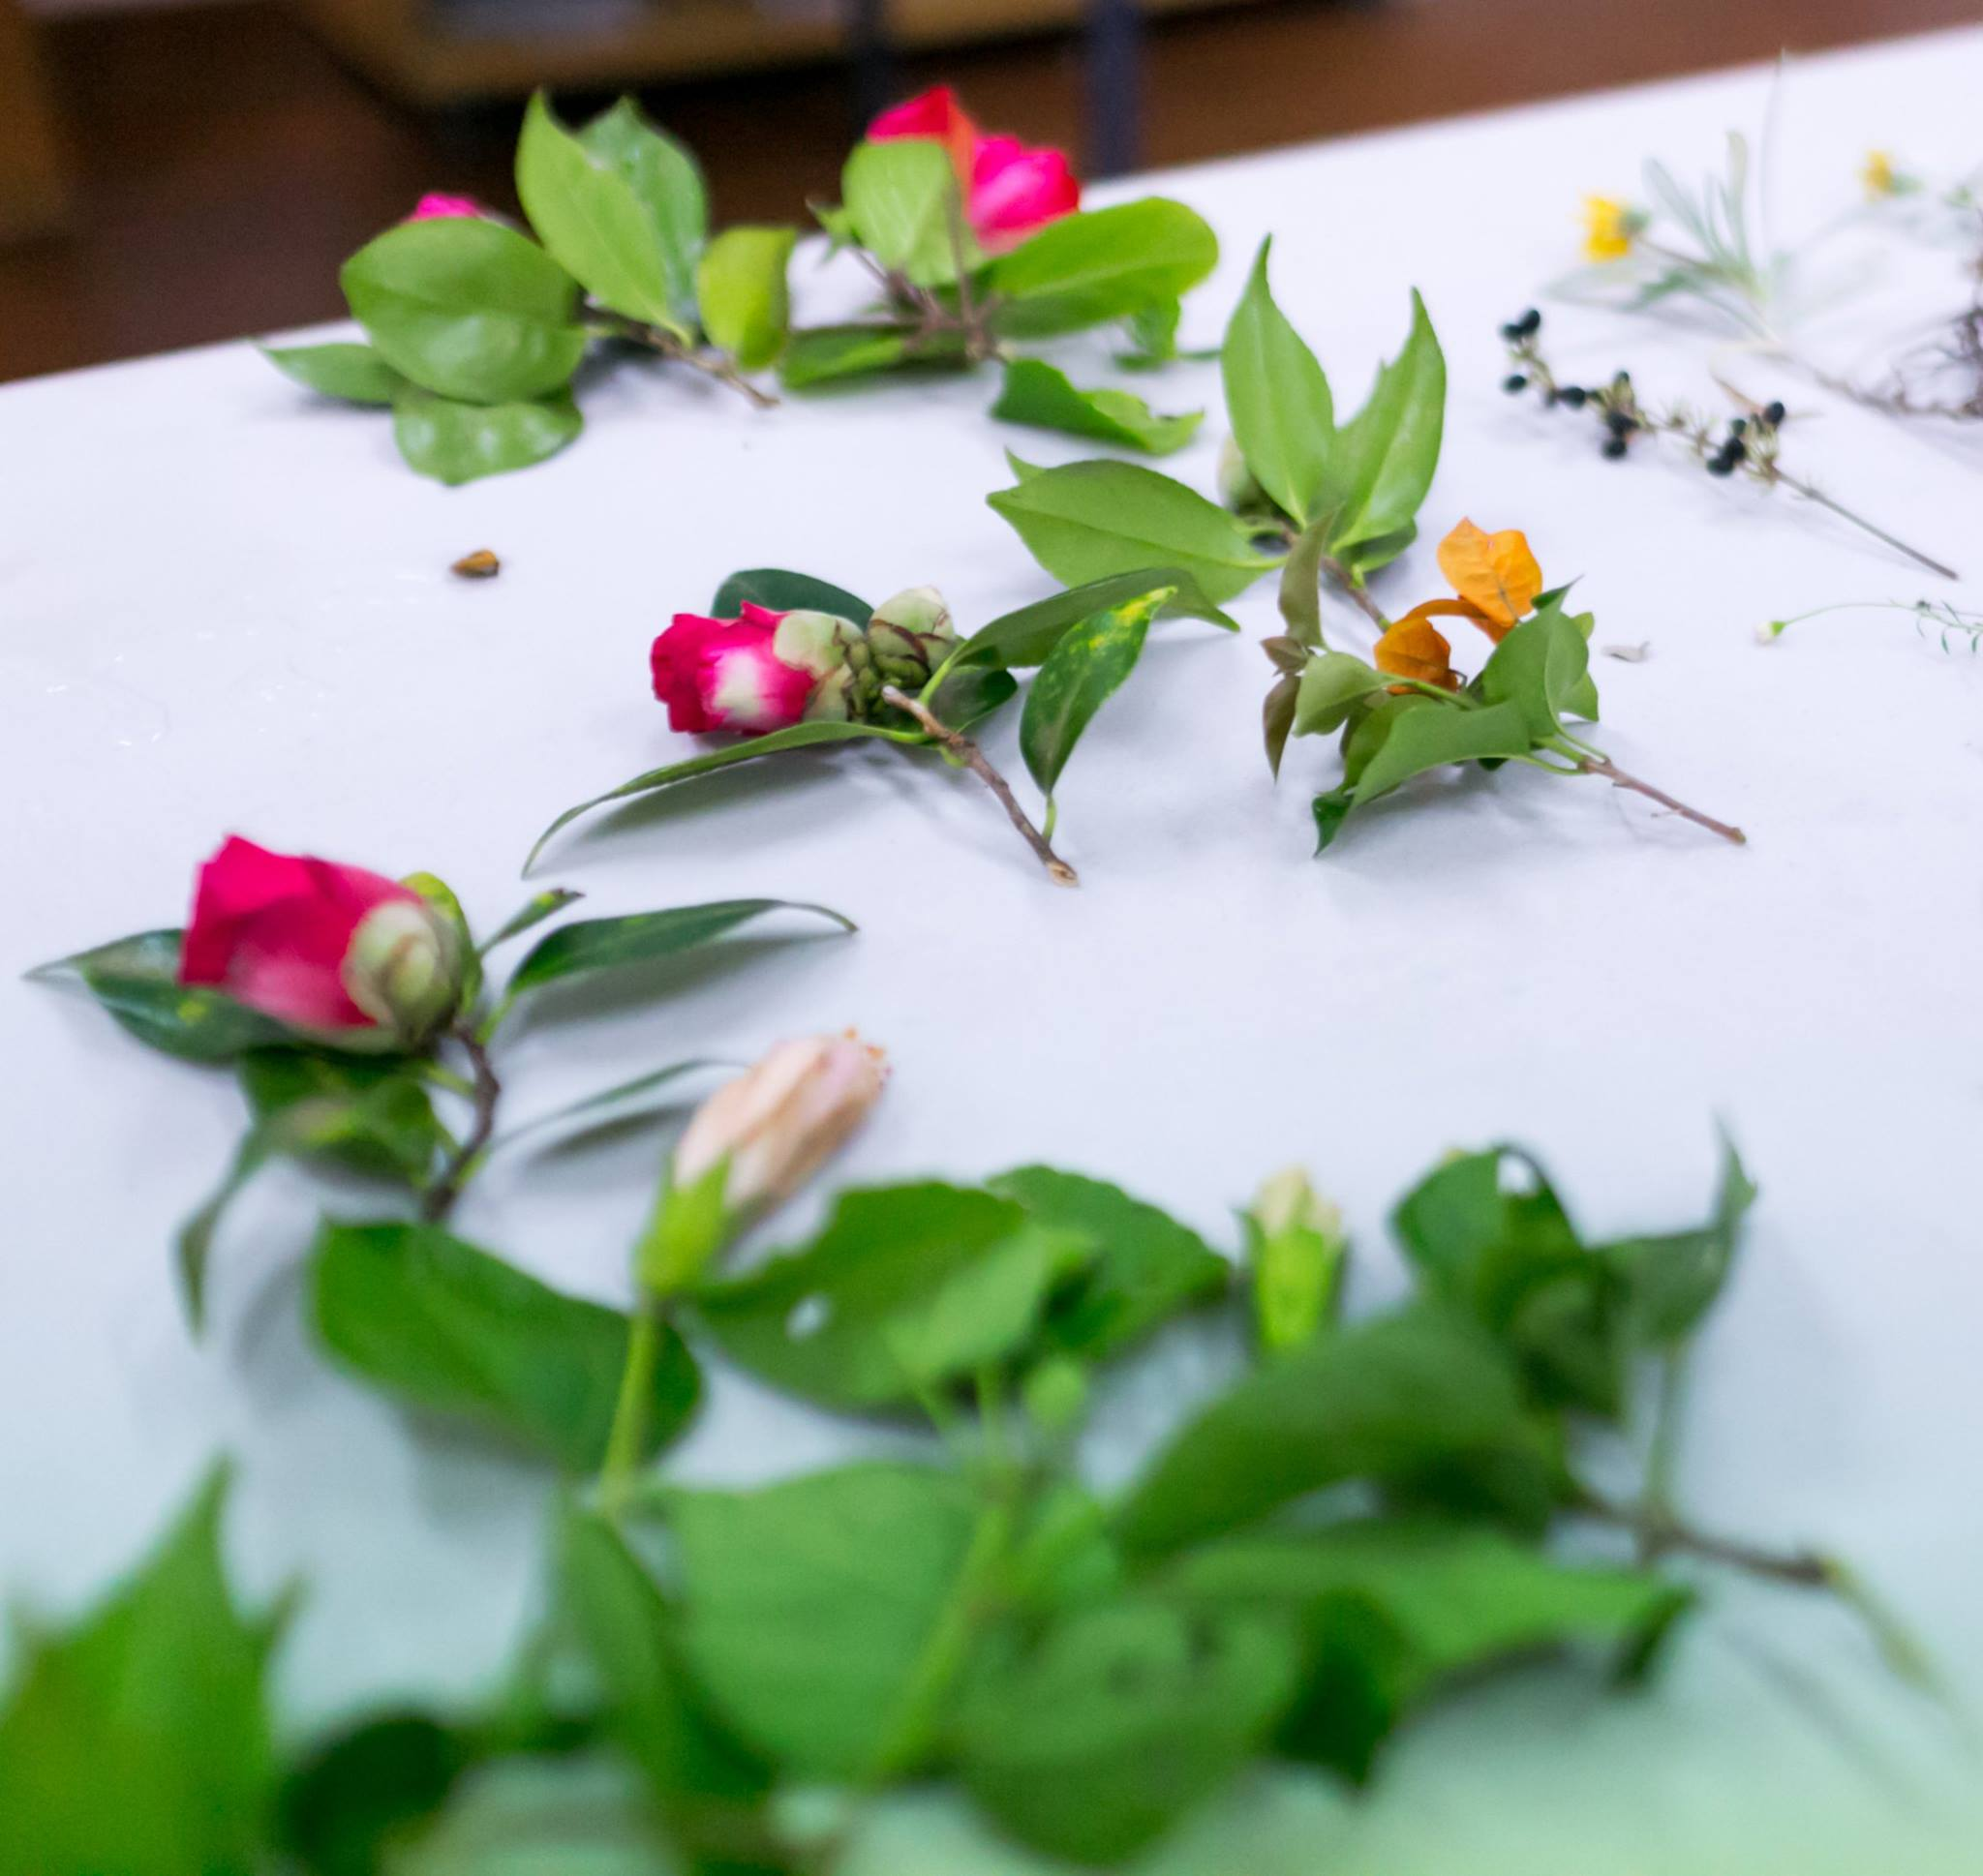 Fresh flowers and leaves used as inspiration in the creative painting workshop facilitated by painter Yaeli Ohana